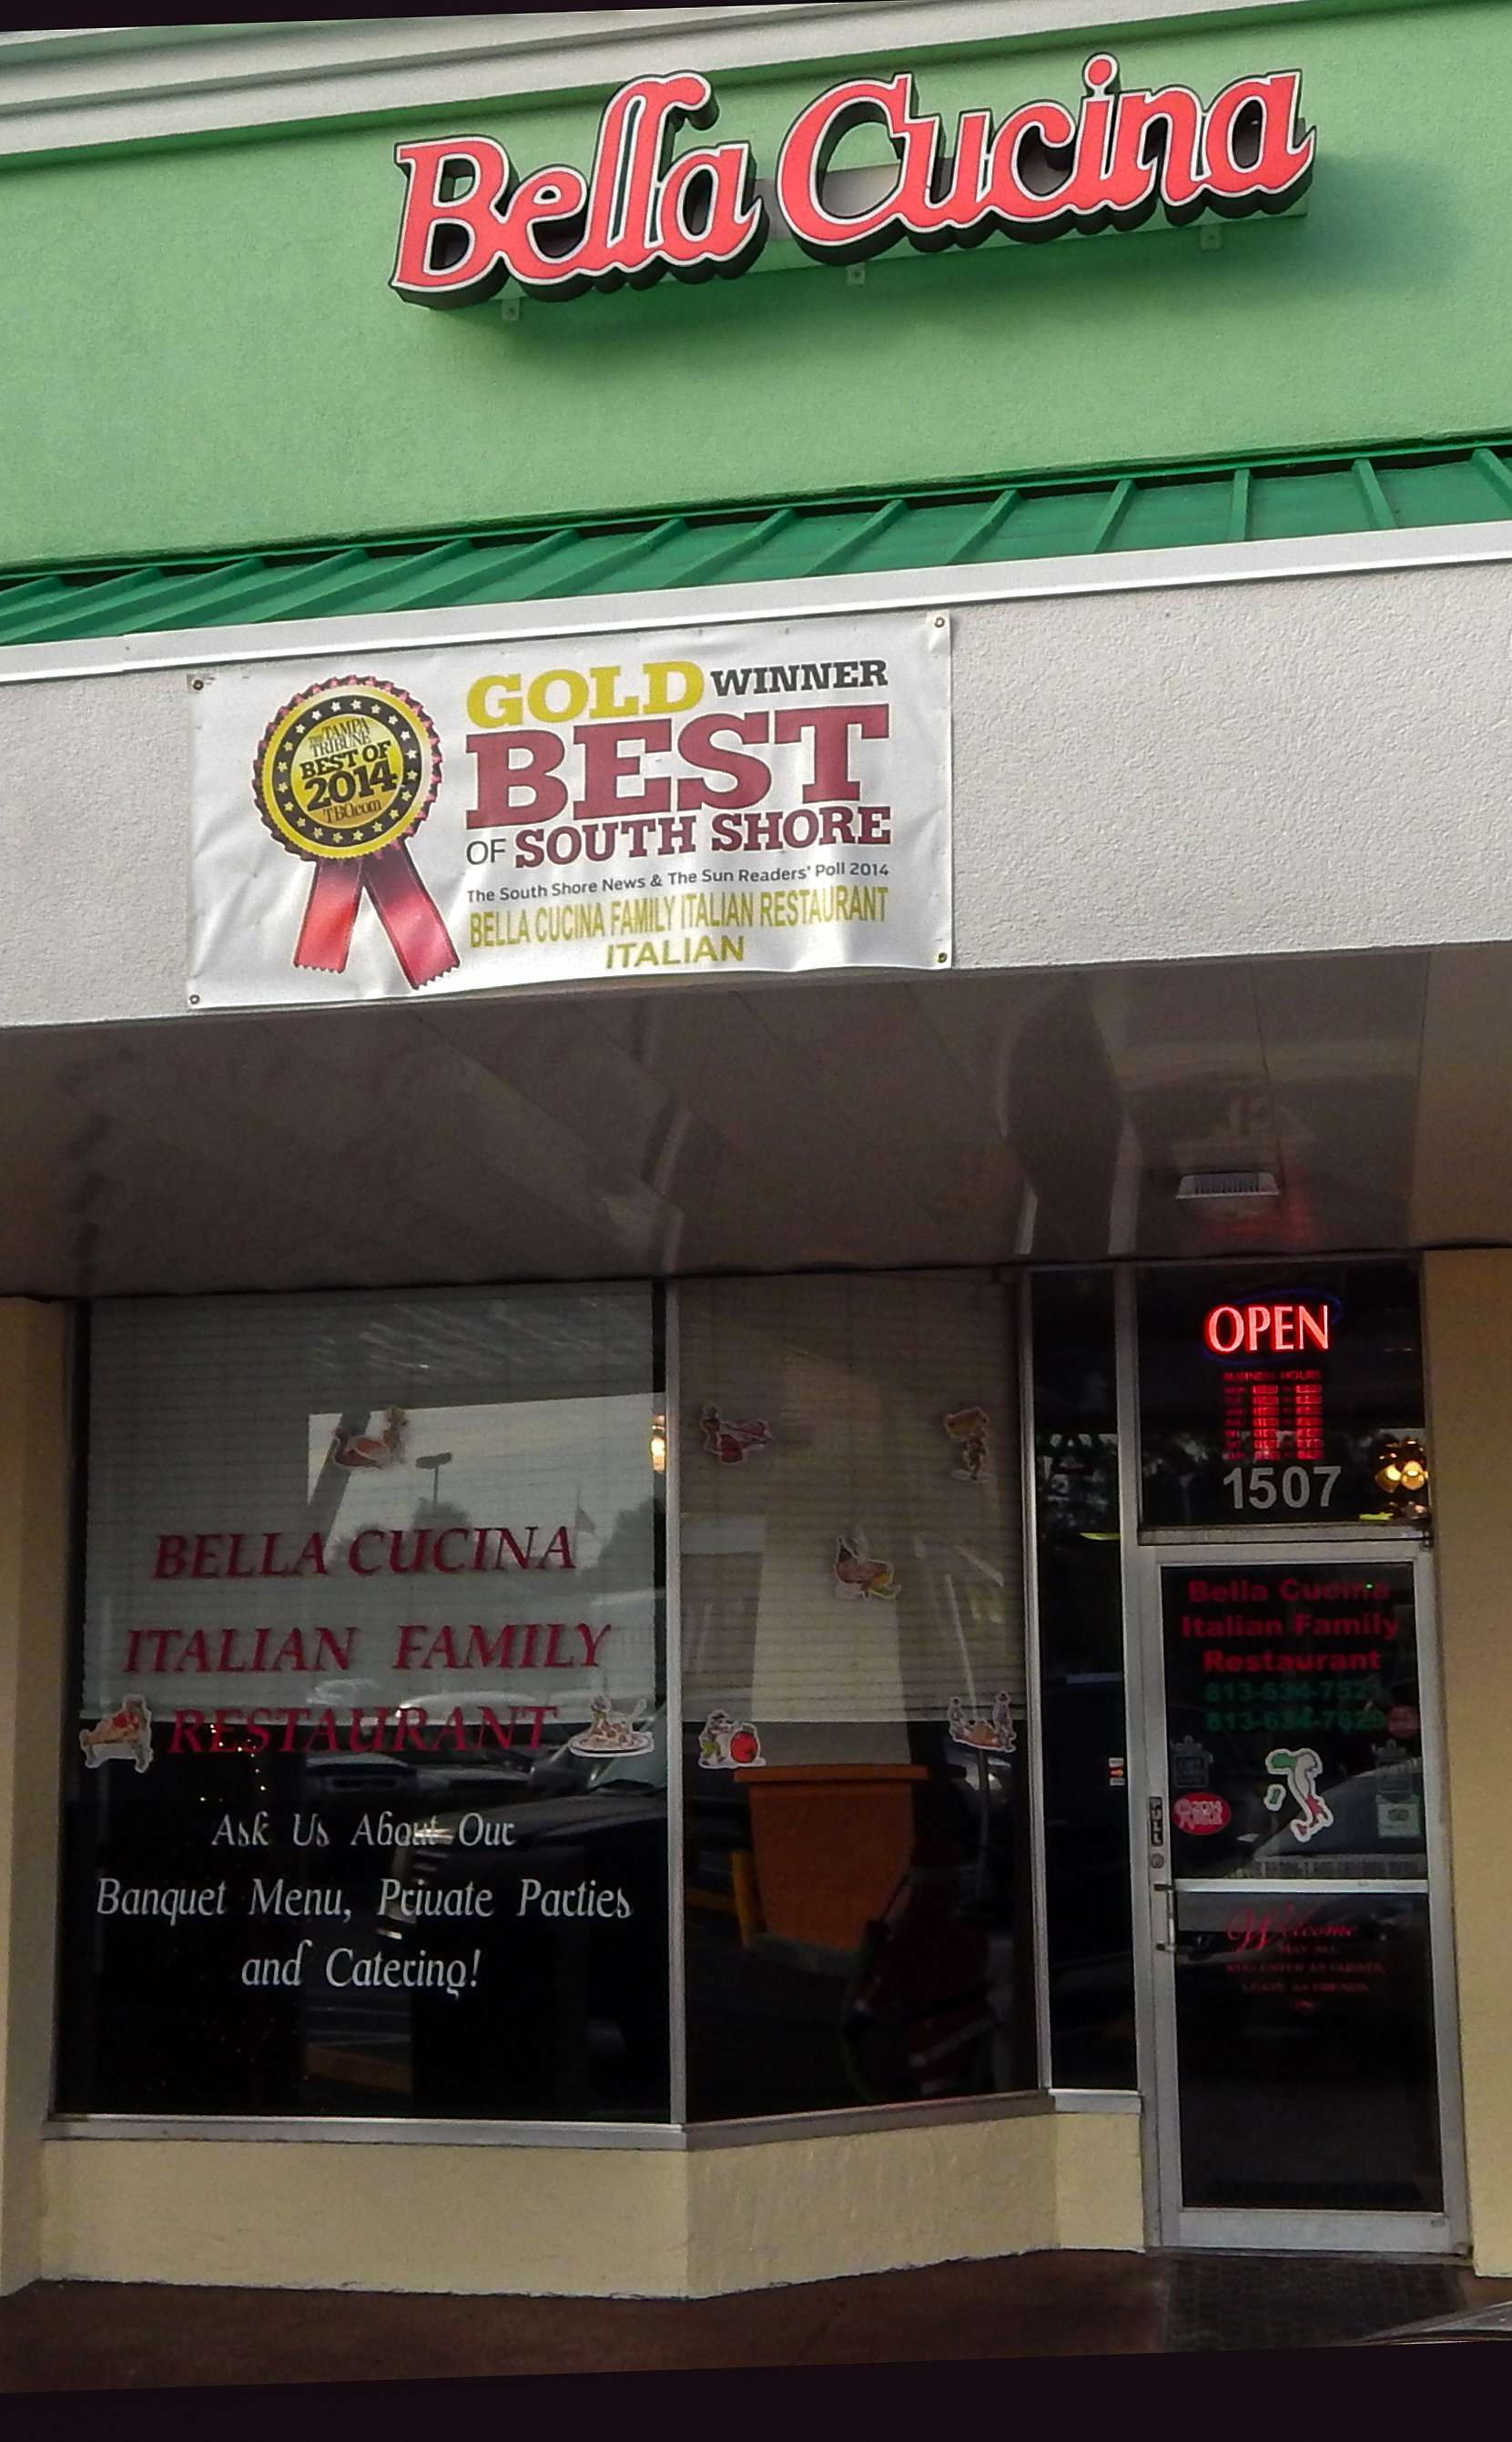 BELLA CUSINA Family Itailian Restaurant wins Tribune Best Of 2014, Best of South Shore, and The Sun Readers Poll 2014